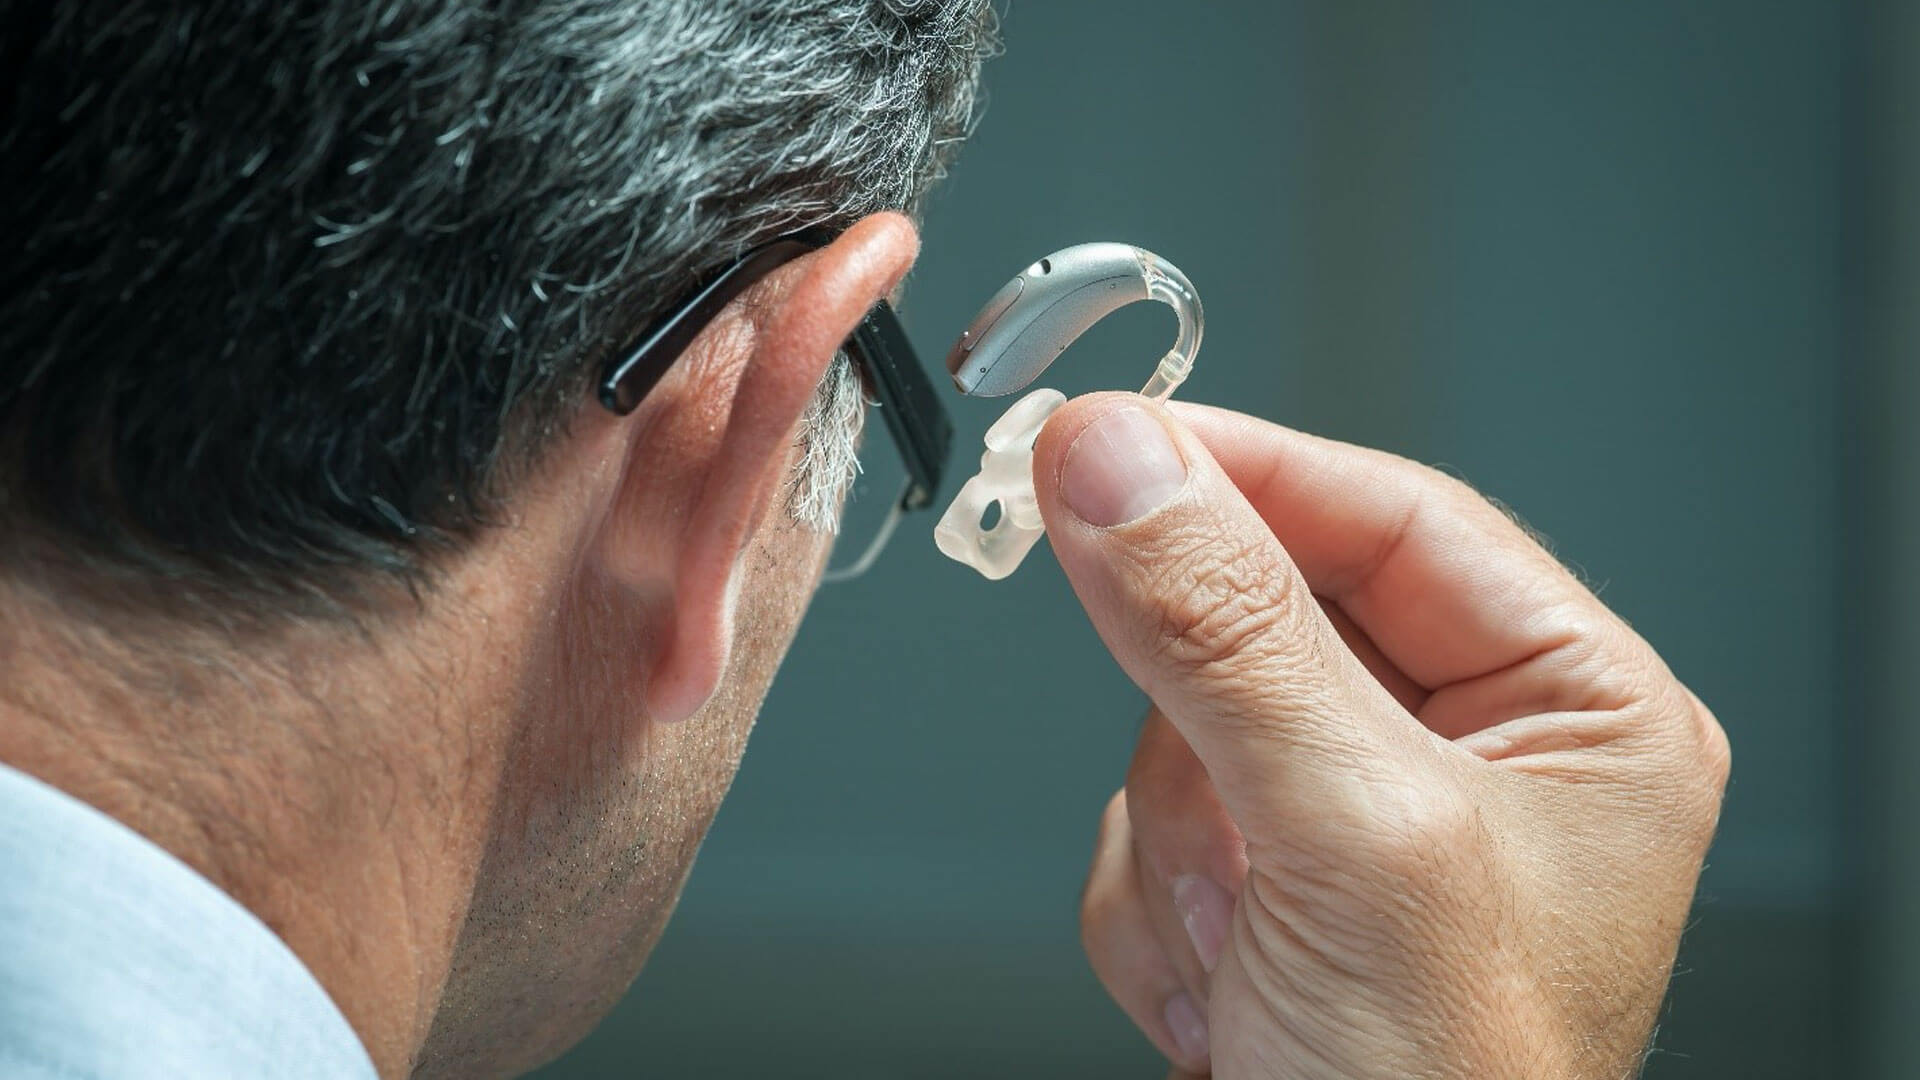 A man with medical device that appears as as a hearing aid.